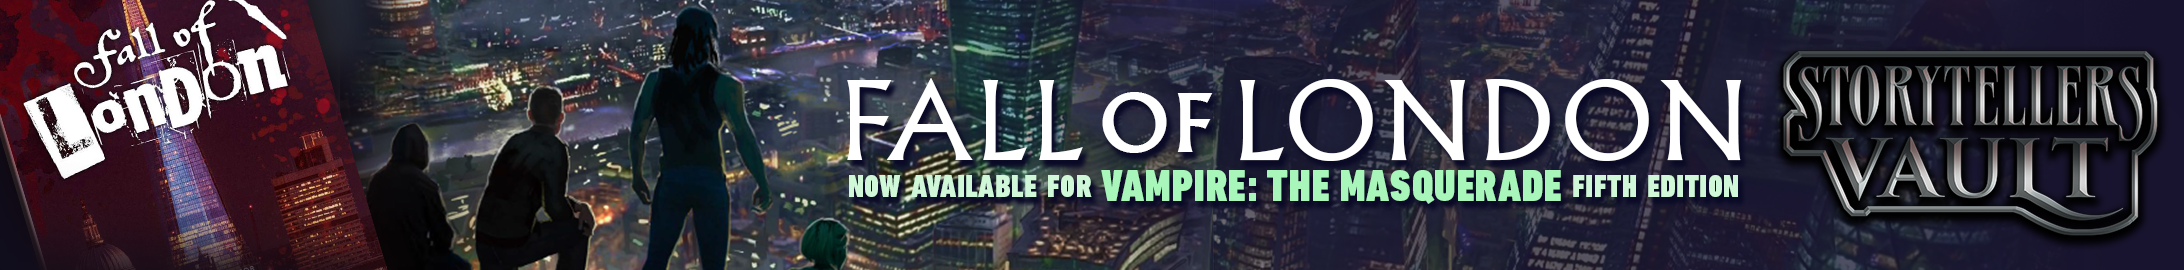 Fall of London now available for Vampire the Masquerade 5th Edition @ Storytellers Vault